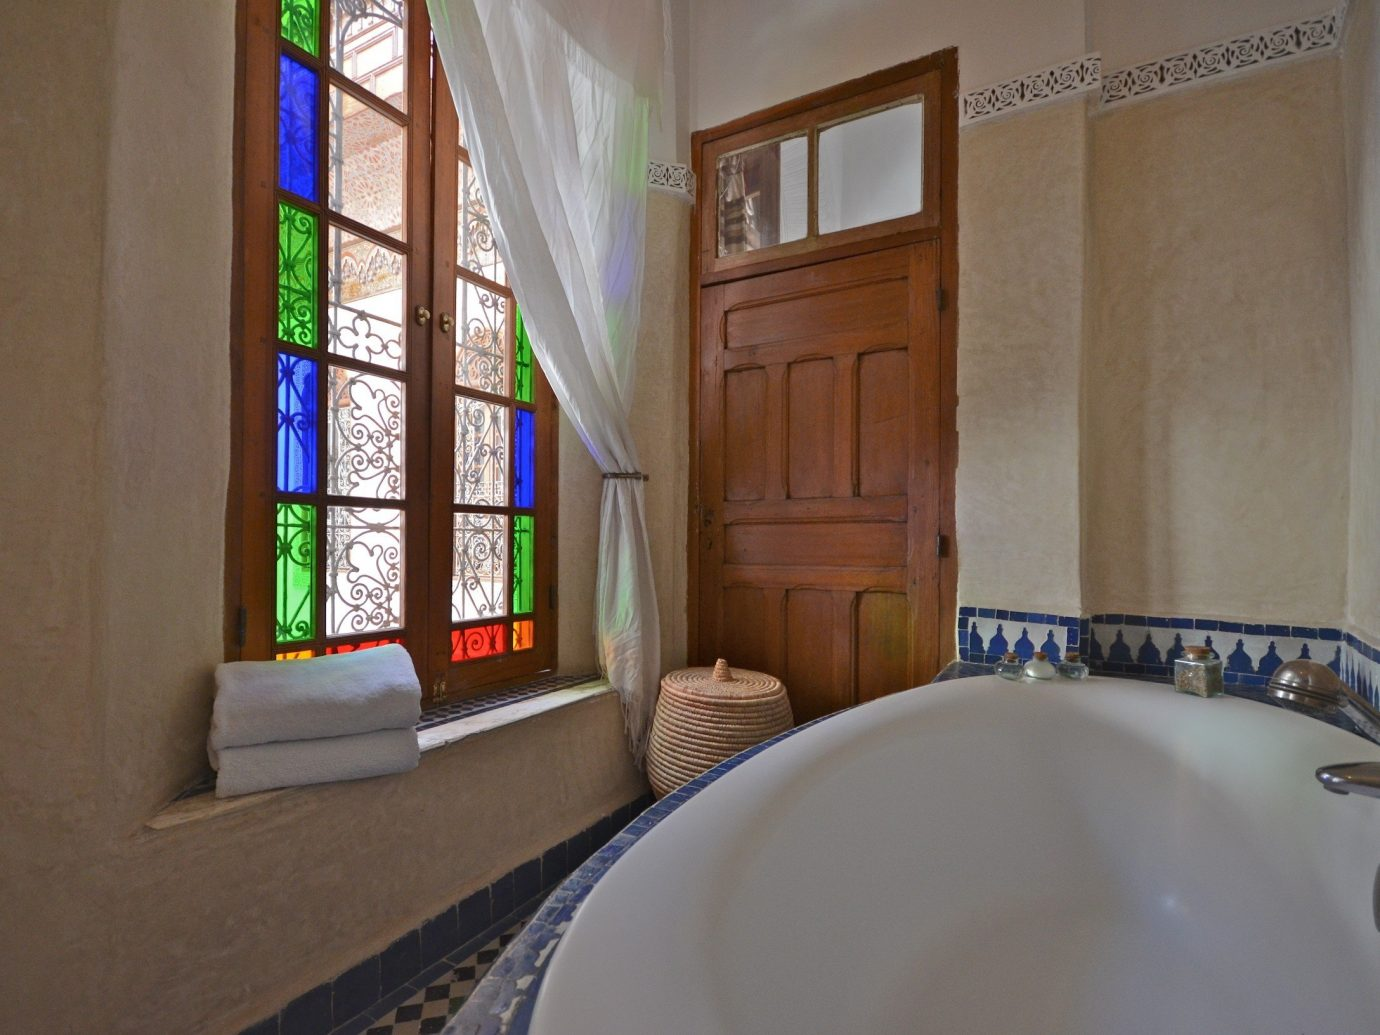 Hotels wall indoor bathroom room property house home estate floor tub interior design sink cottage window real estate Design apartment mansion bathtub Bath